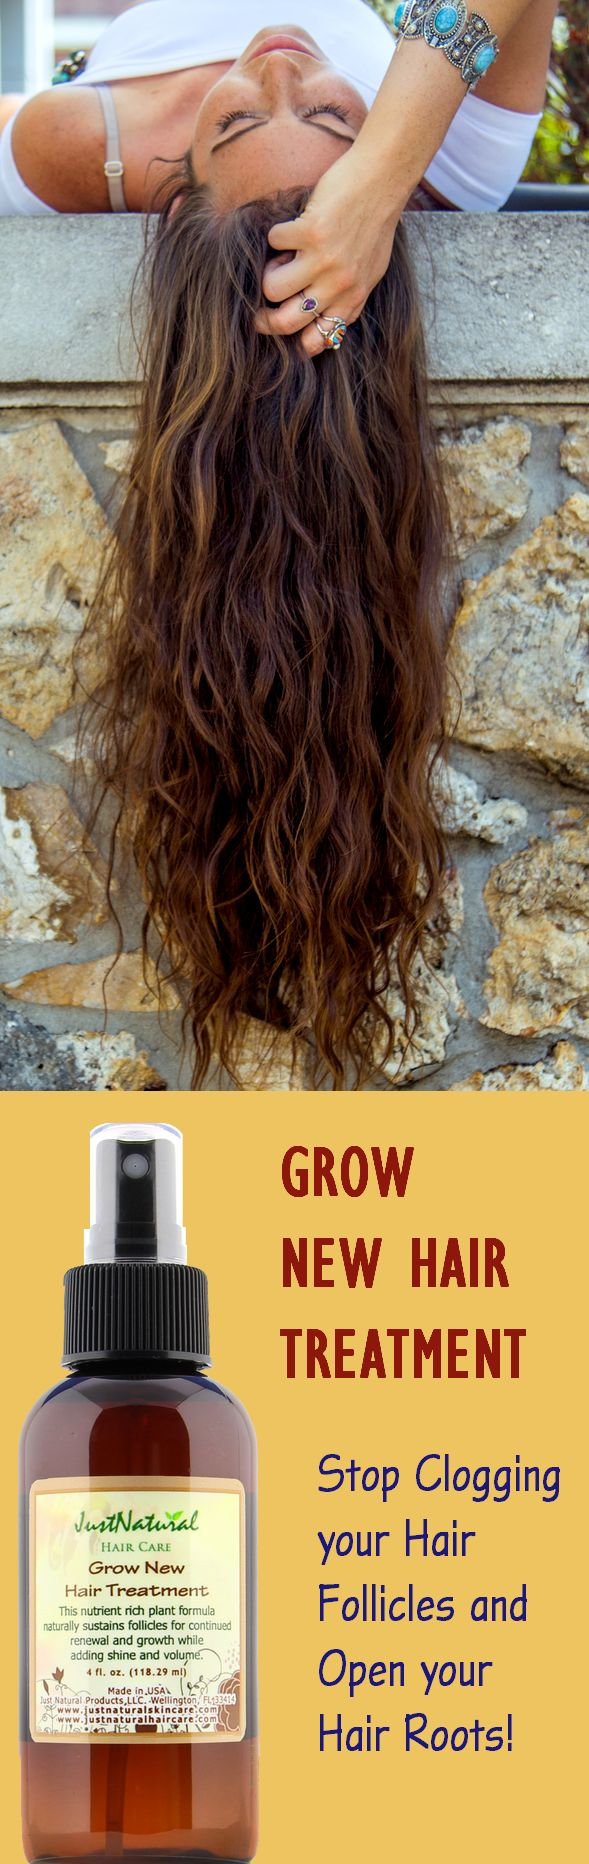 Stop Clogging your Hair Follicles and Open your Hair Roots